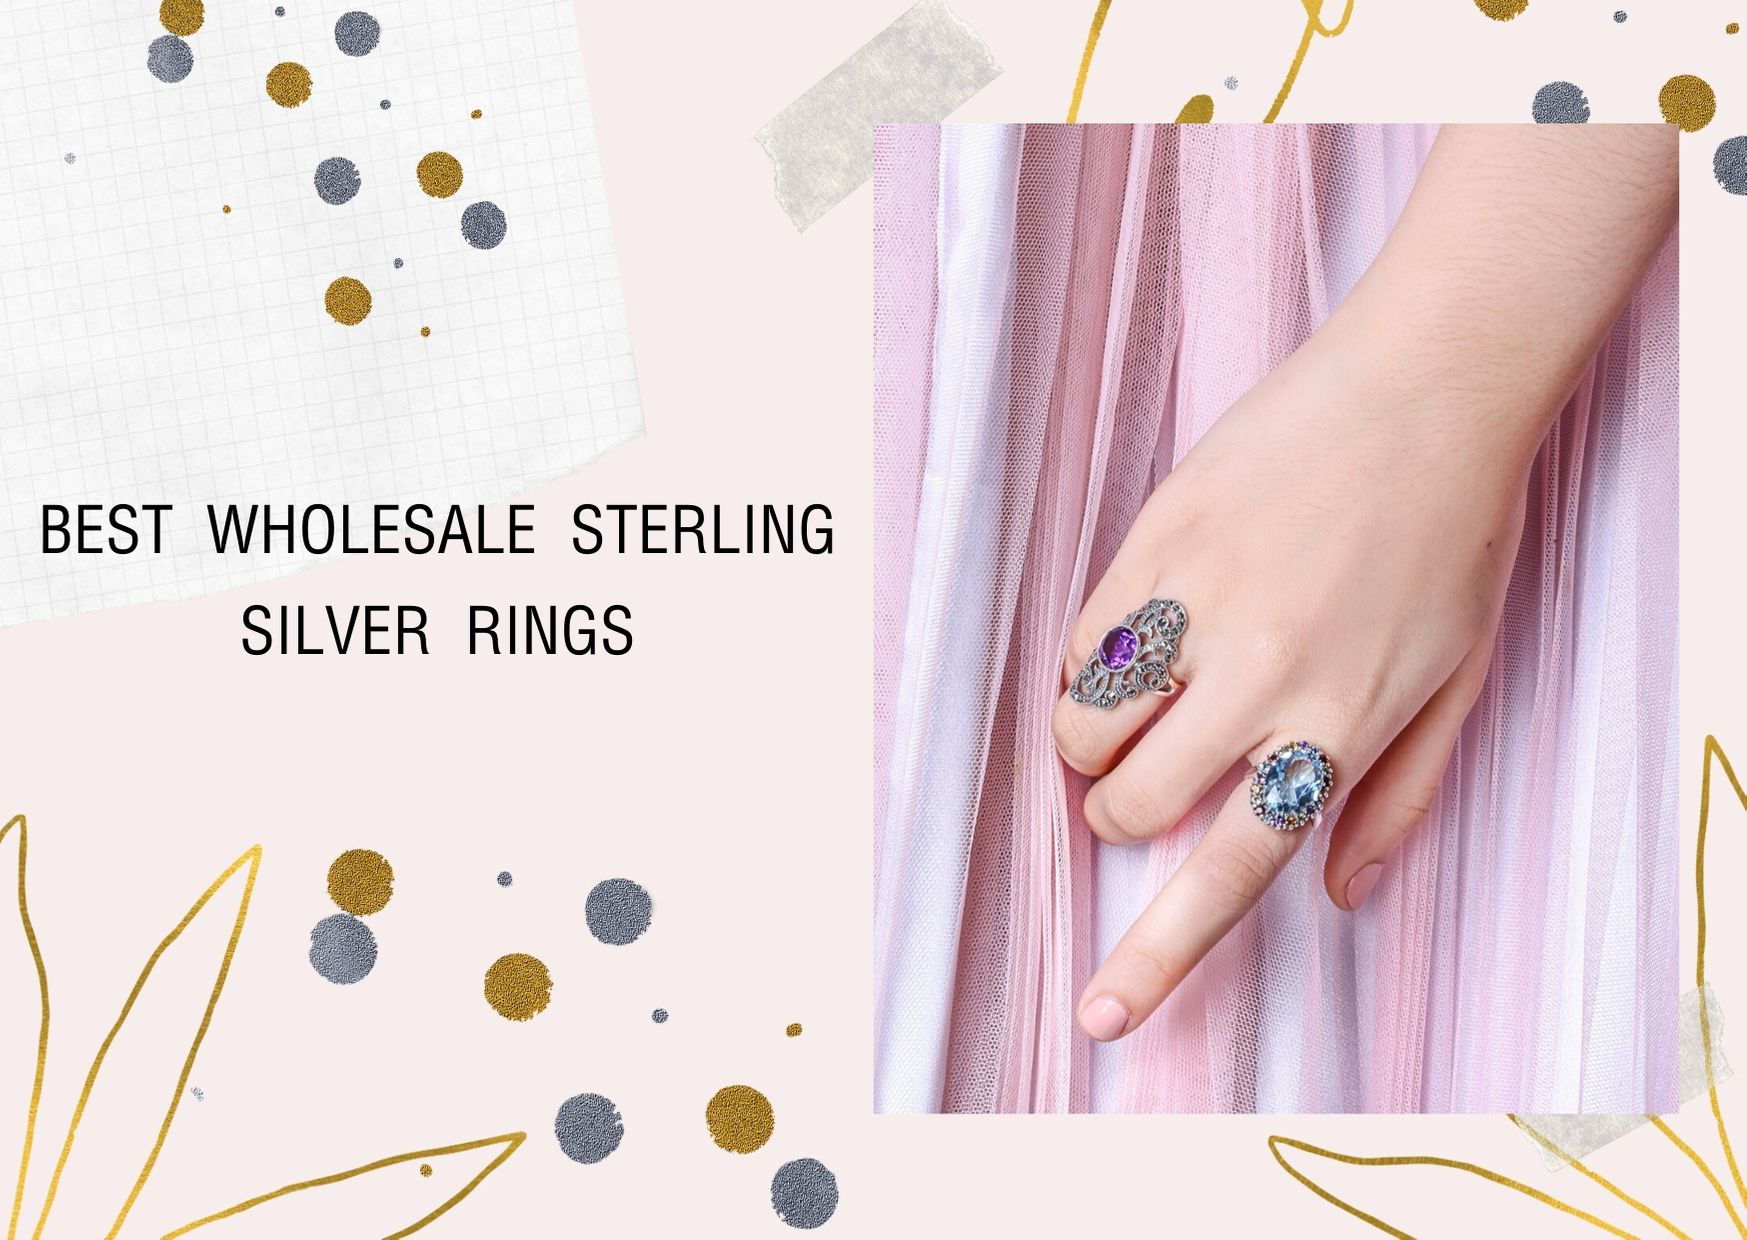 Best Wholesale Sterling Silver Rings